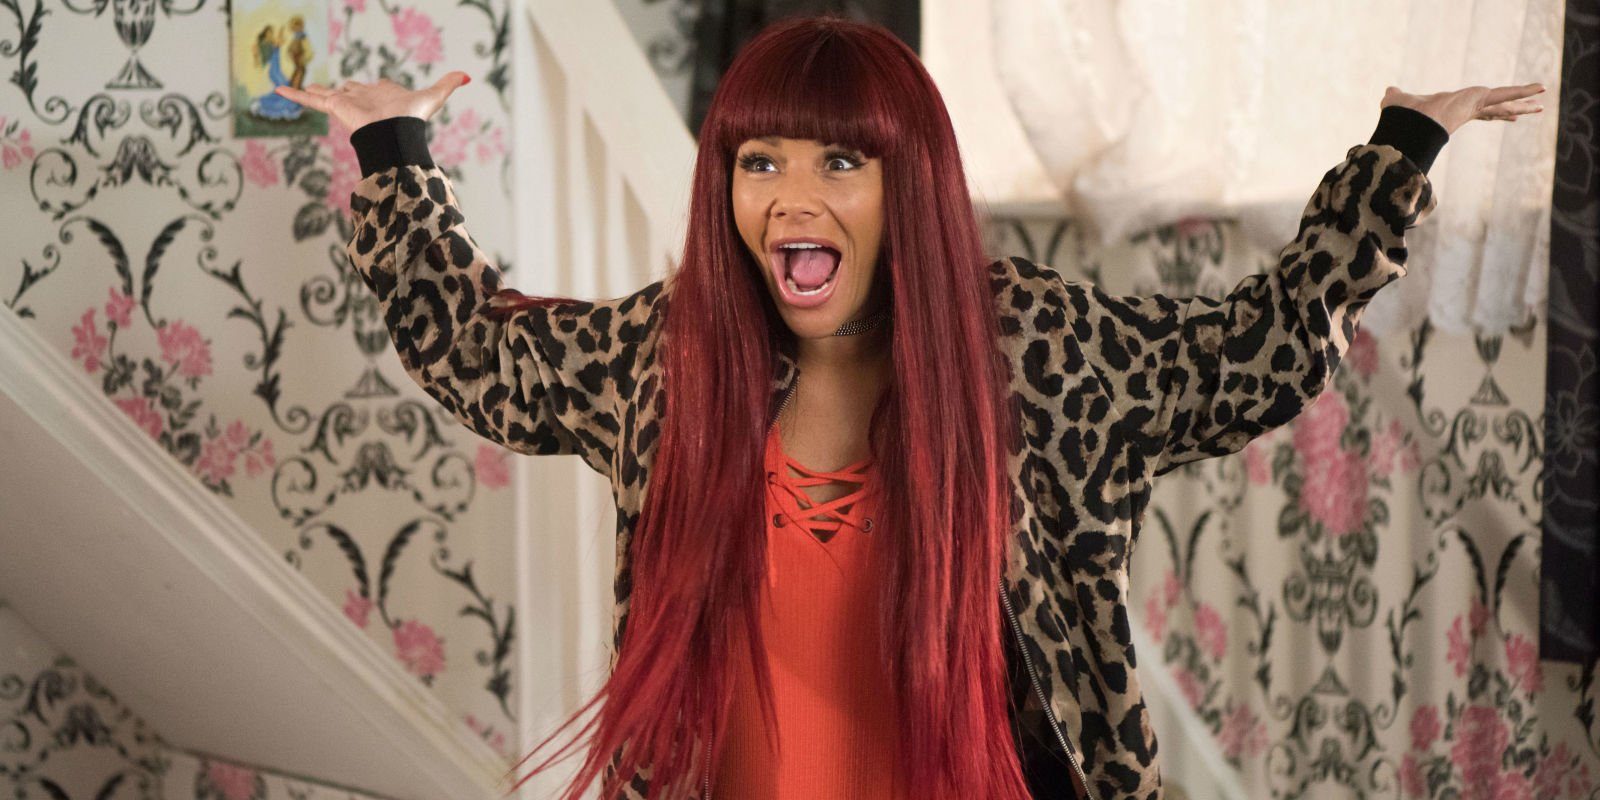 Hollyoaks star Chelsee Healey confirms plans for the show to film abroad again